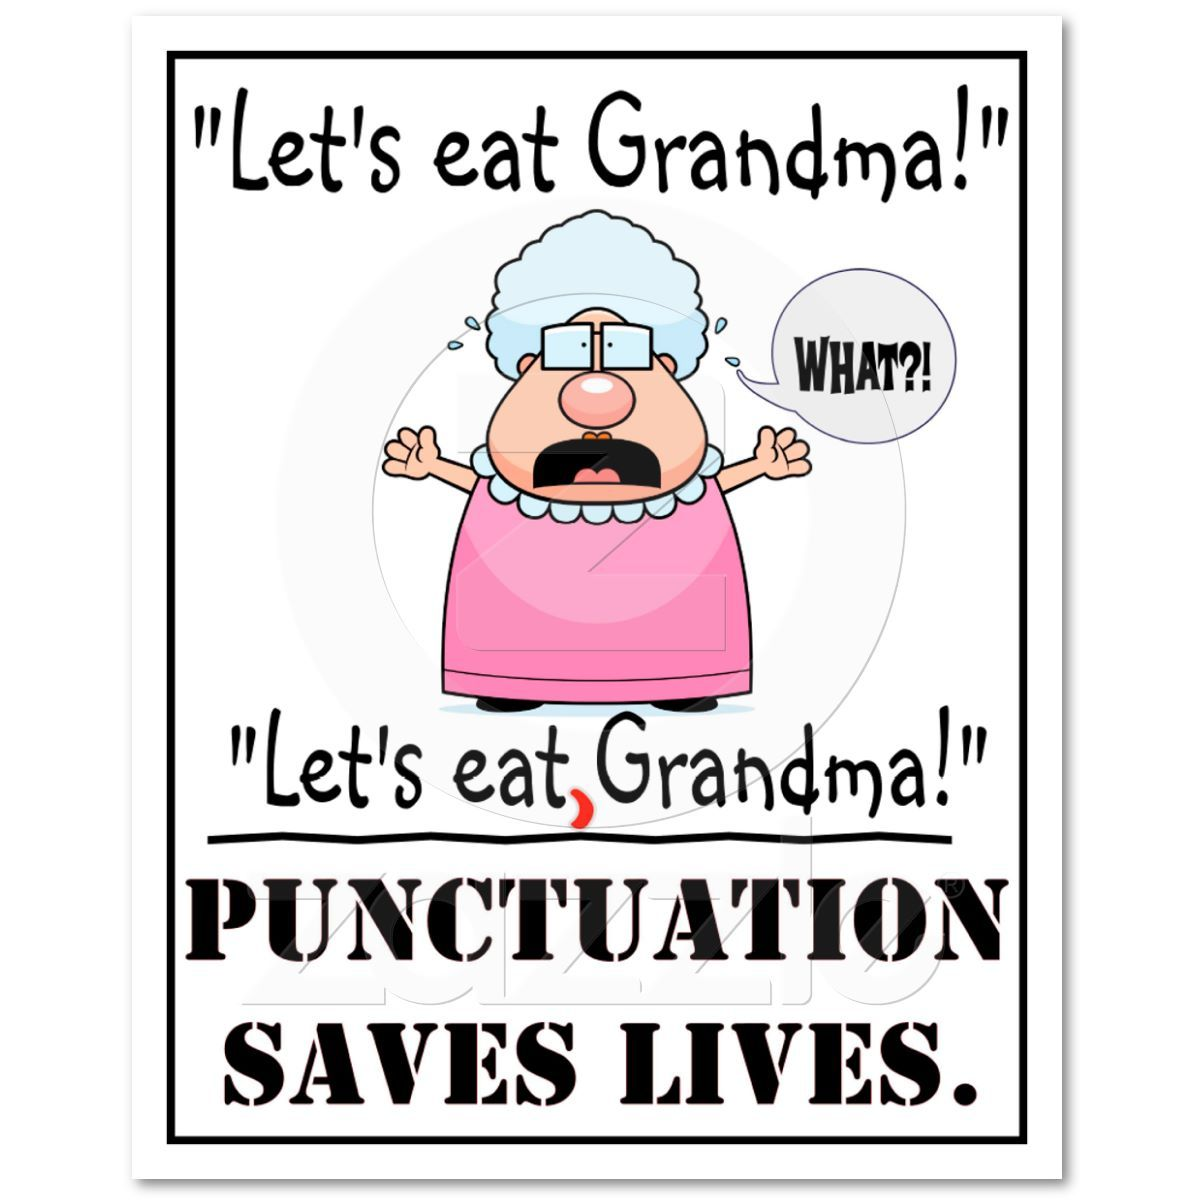 punctuation saves lives examples